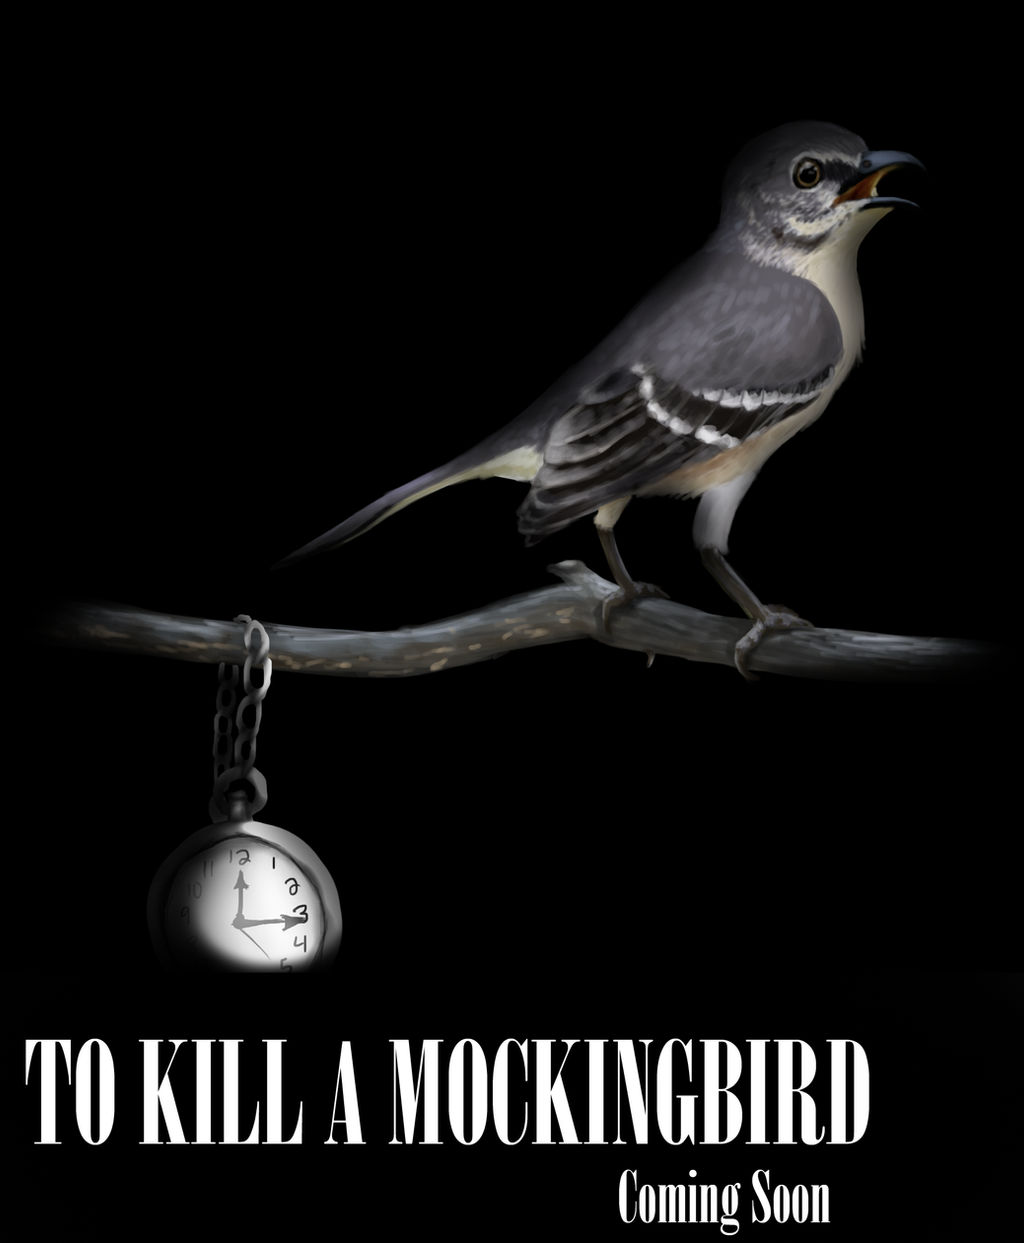 To Kill A Mockingbird Movie Poster Project by Limakilo on DeviantArt